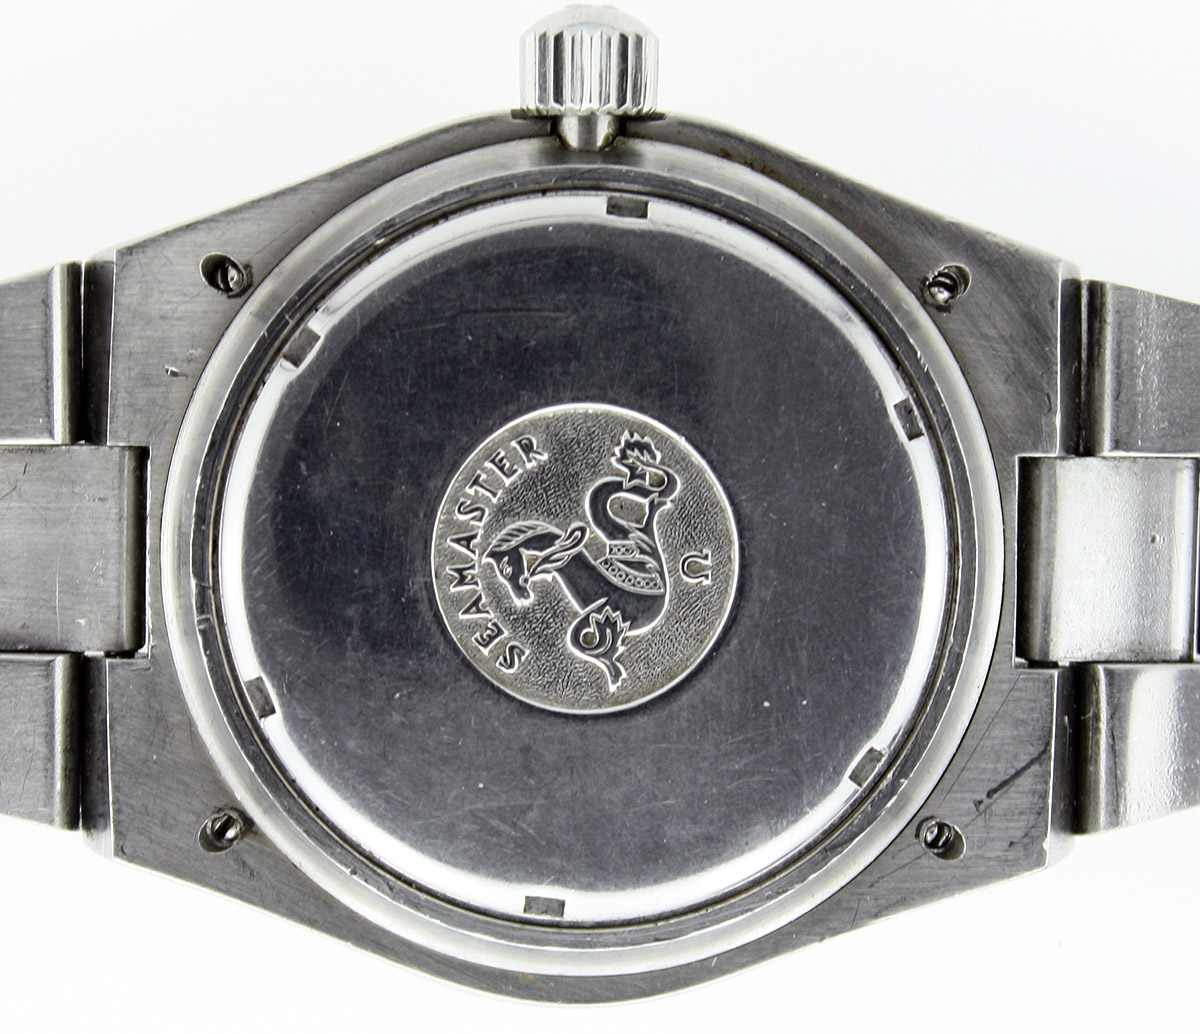 Vintage Watches, Used Watches by Finer Times